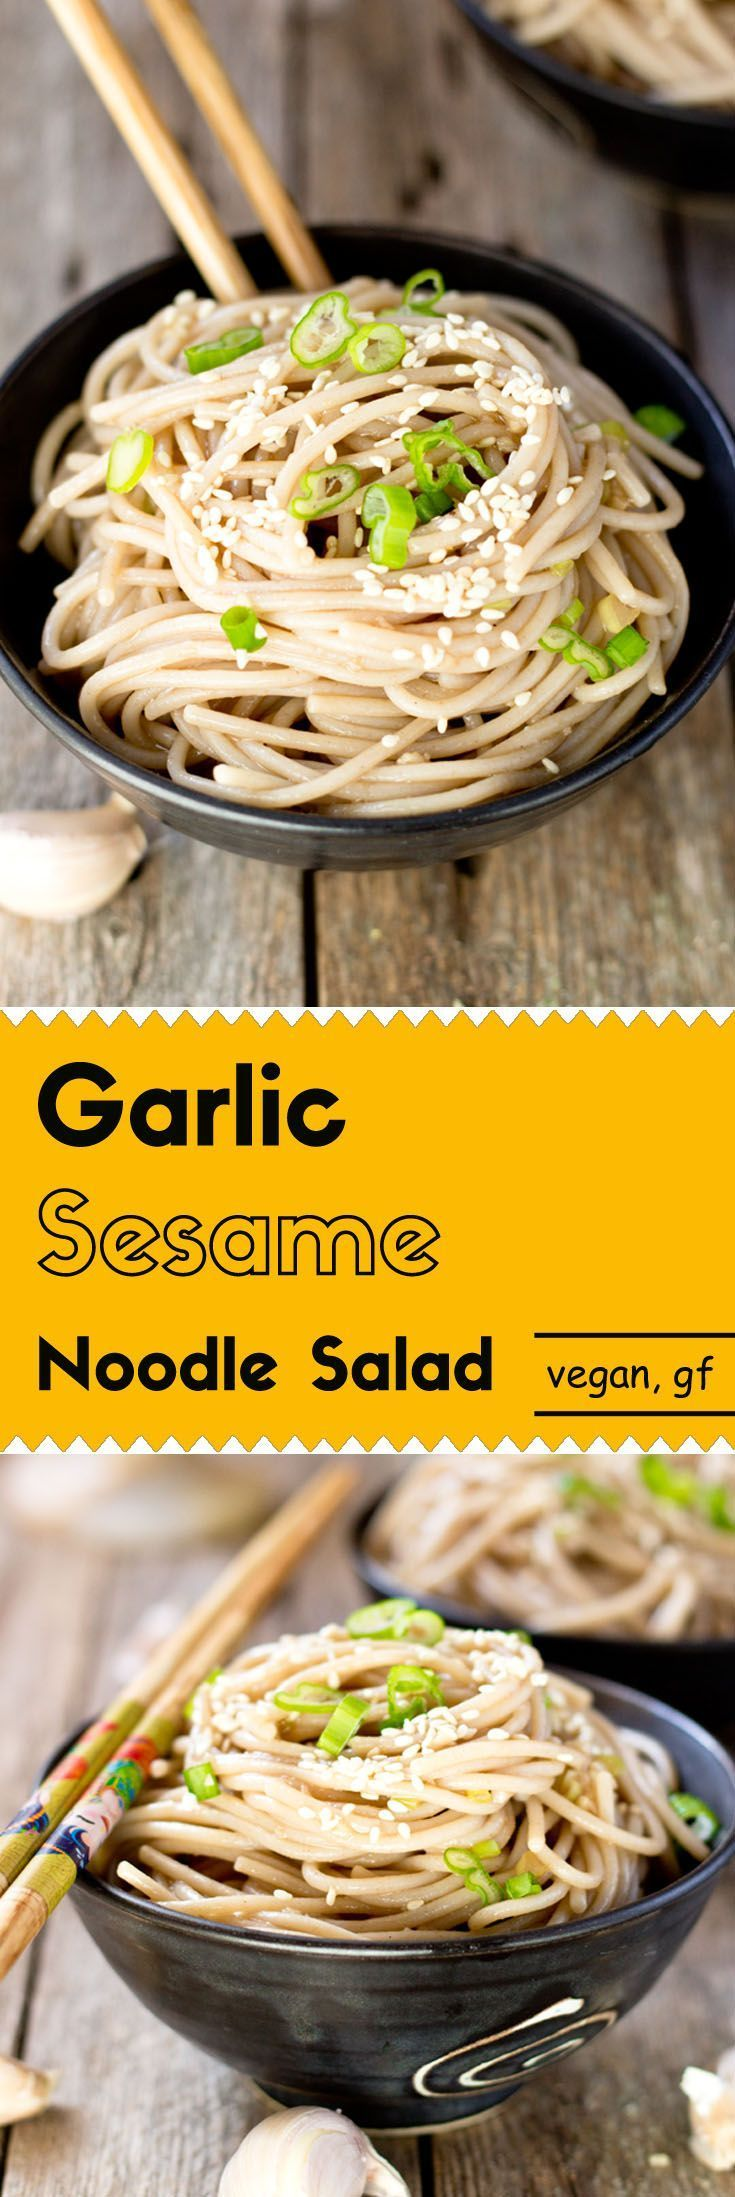 This garlic sesame noodle salad has a robust flavor from the roasted garlic and sesame seeds, at an appetizing and comfortable level. (vegan, gluten-free)